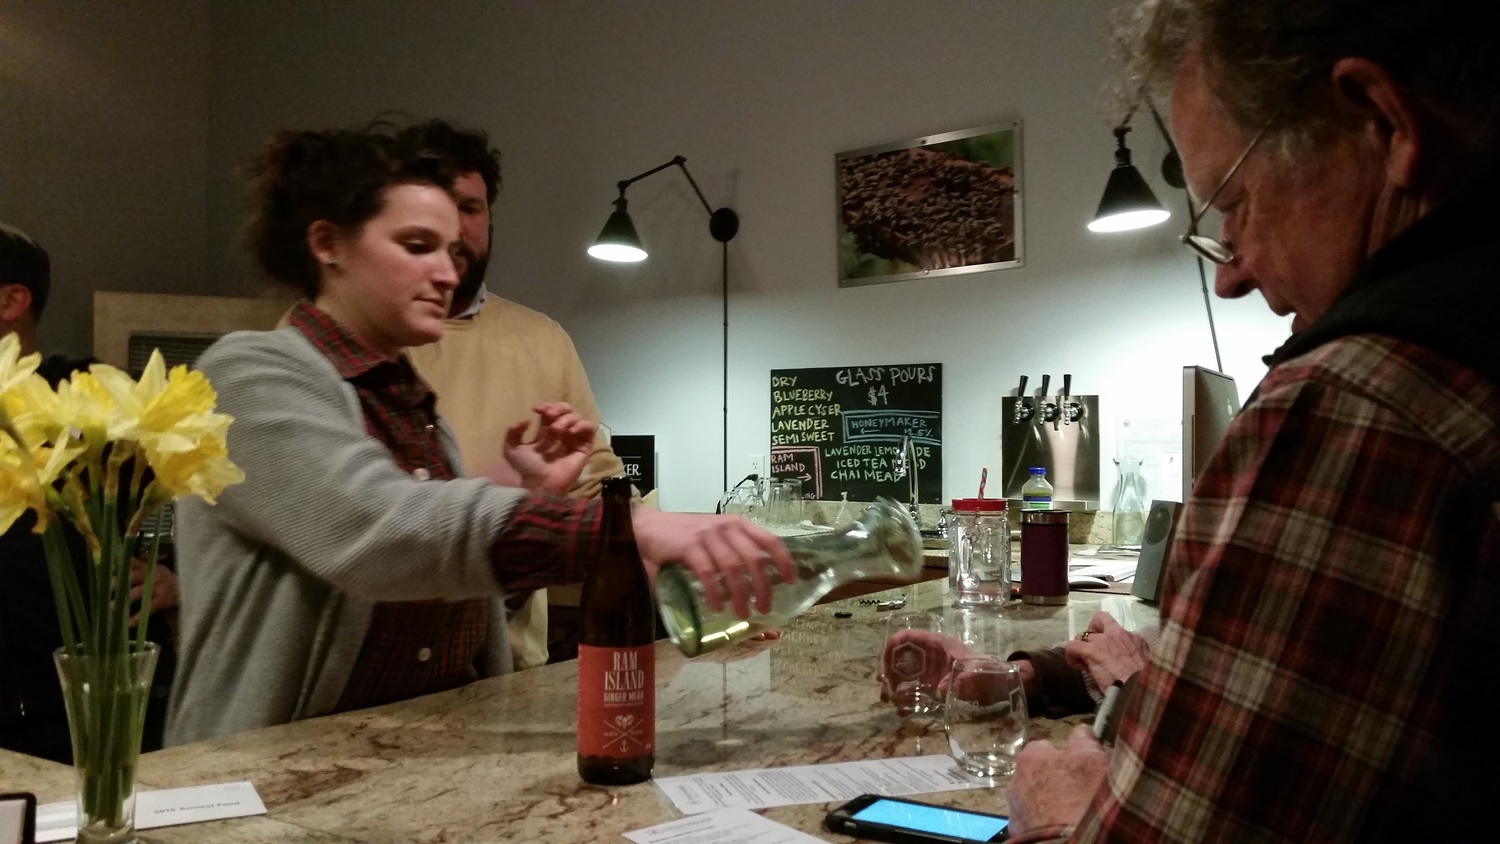 At Maine Mead Works, Leah poured each of the groups samples of several different still and sparkling meads, as well as iced teas and lemonade. The first-run bottle of Ginger Mead was also opened for the group.